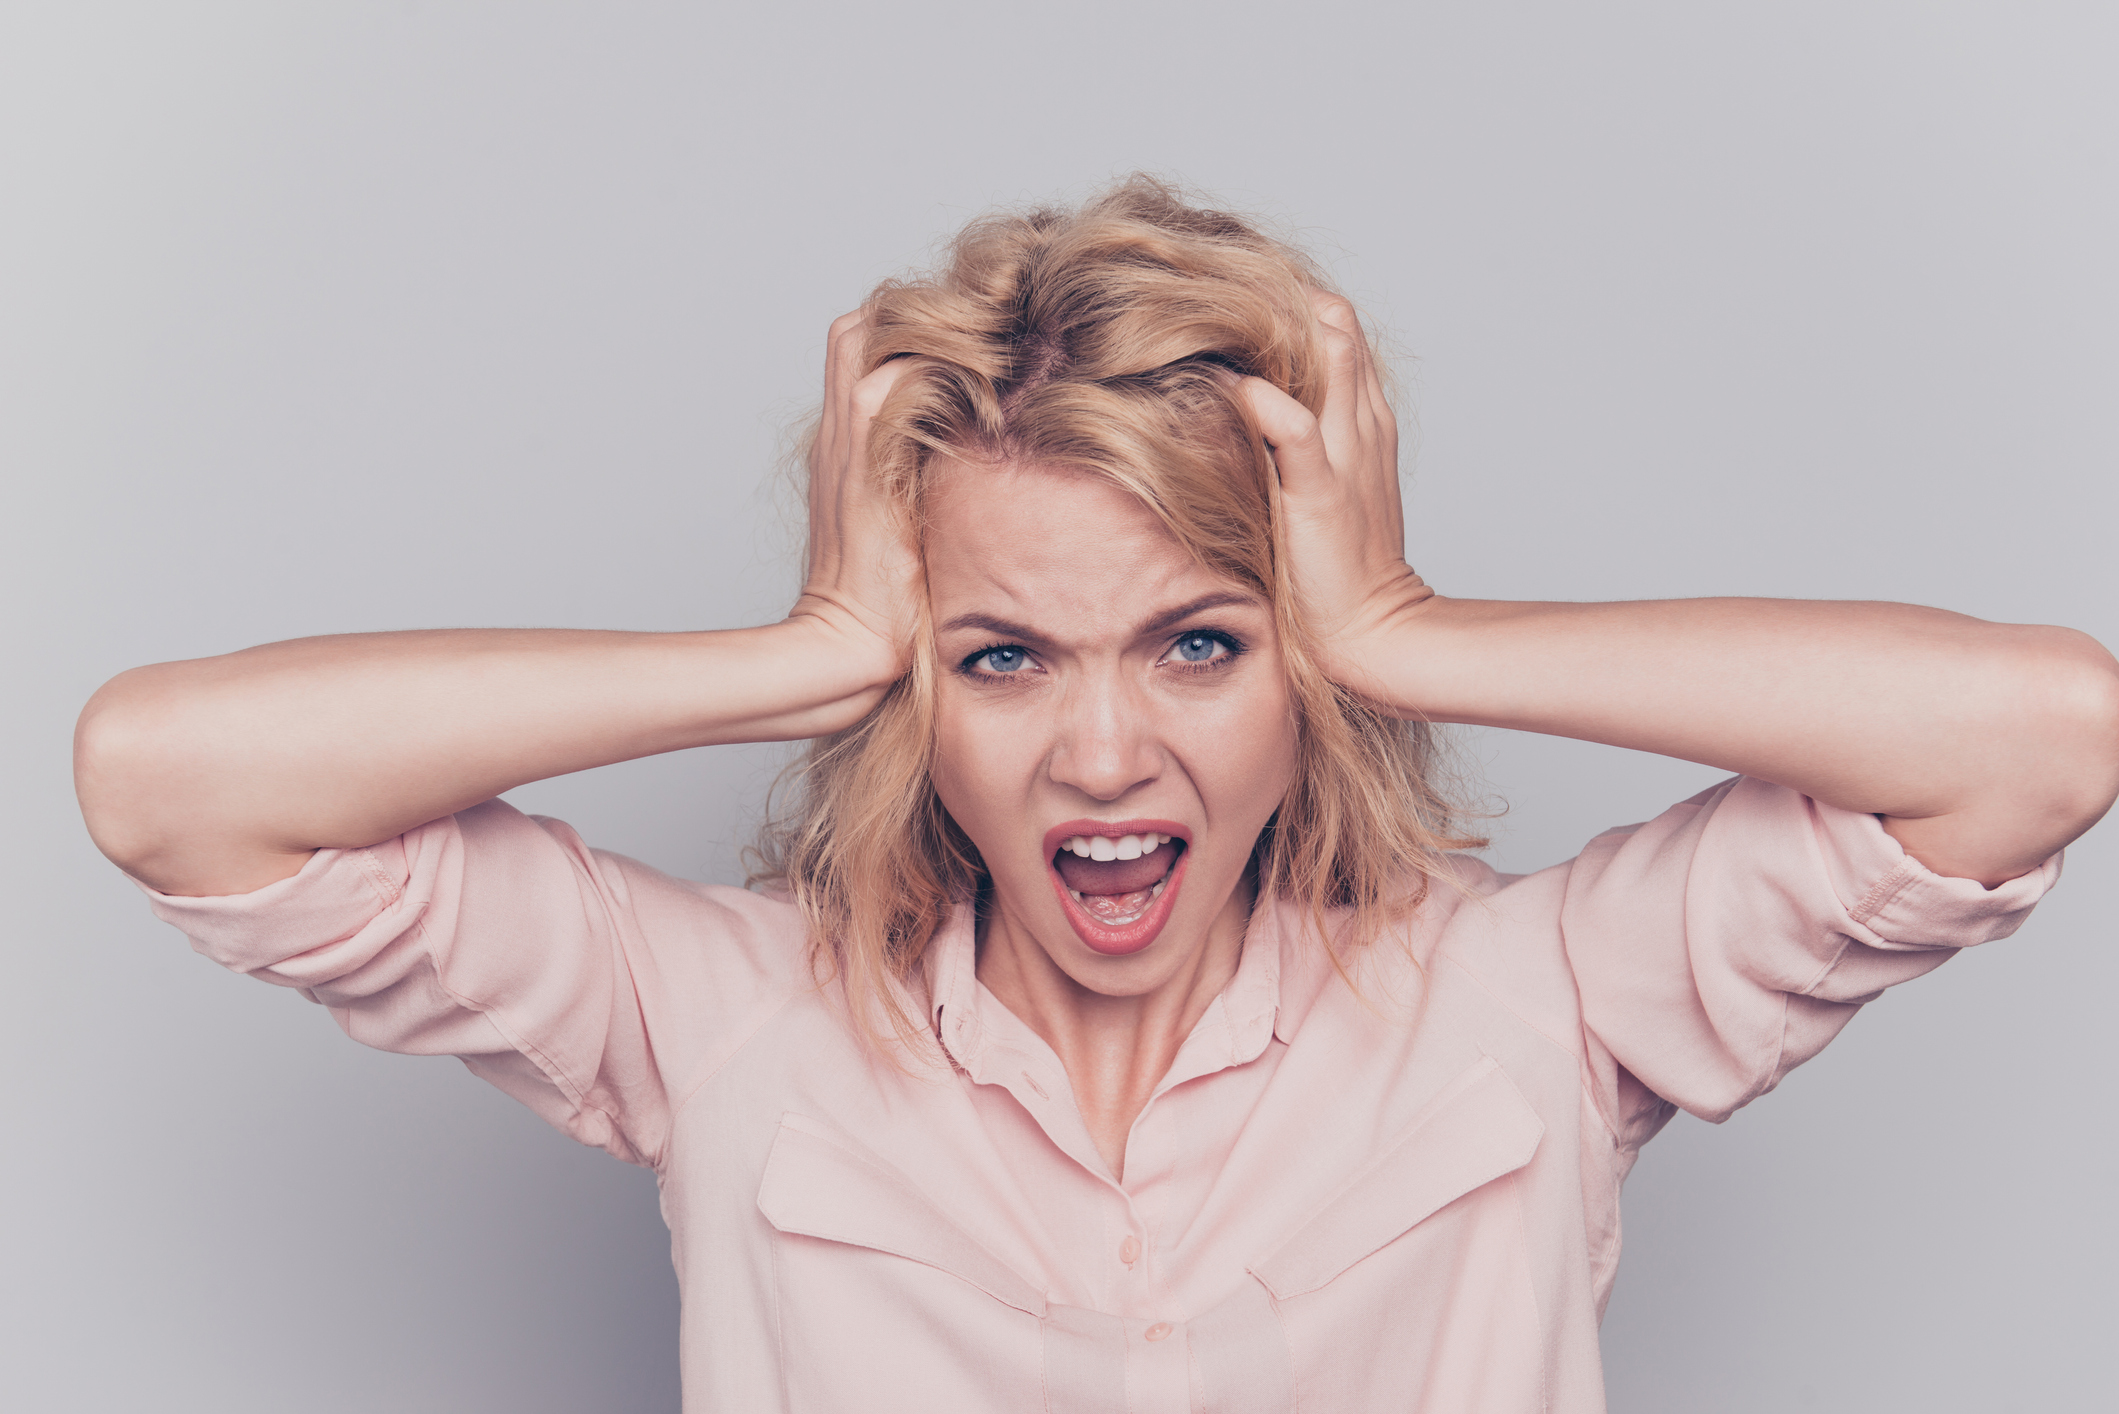 Woman holding her head with angry expression on her face.